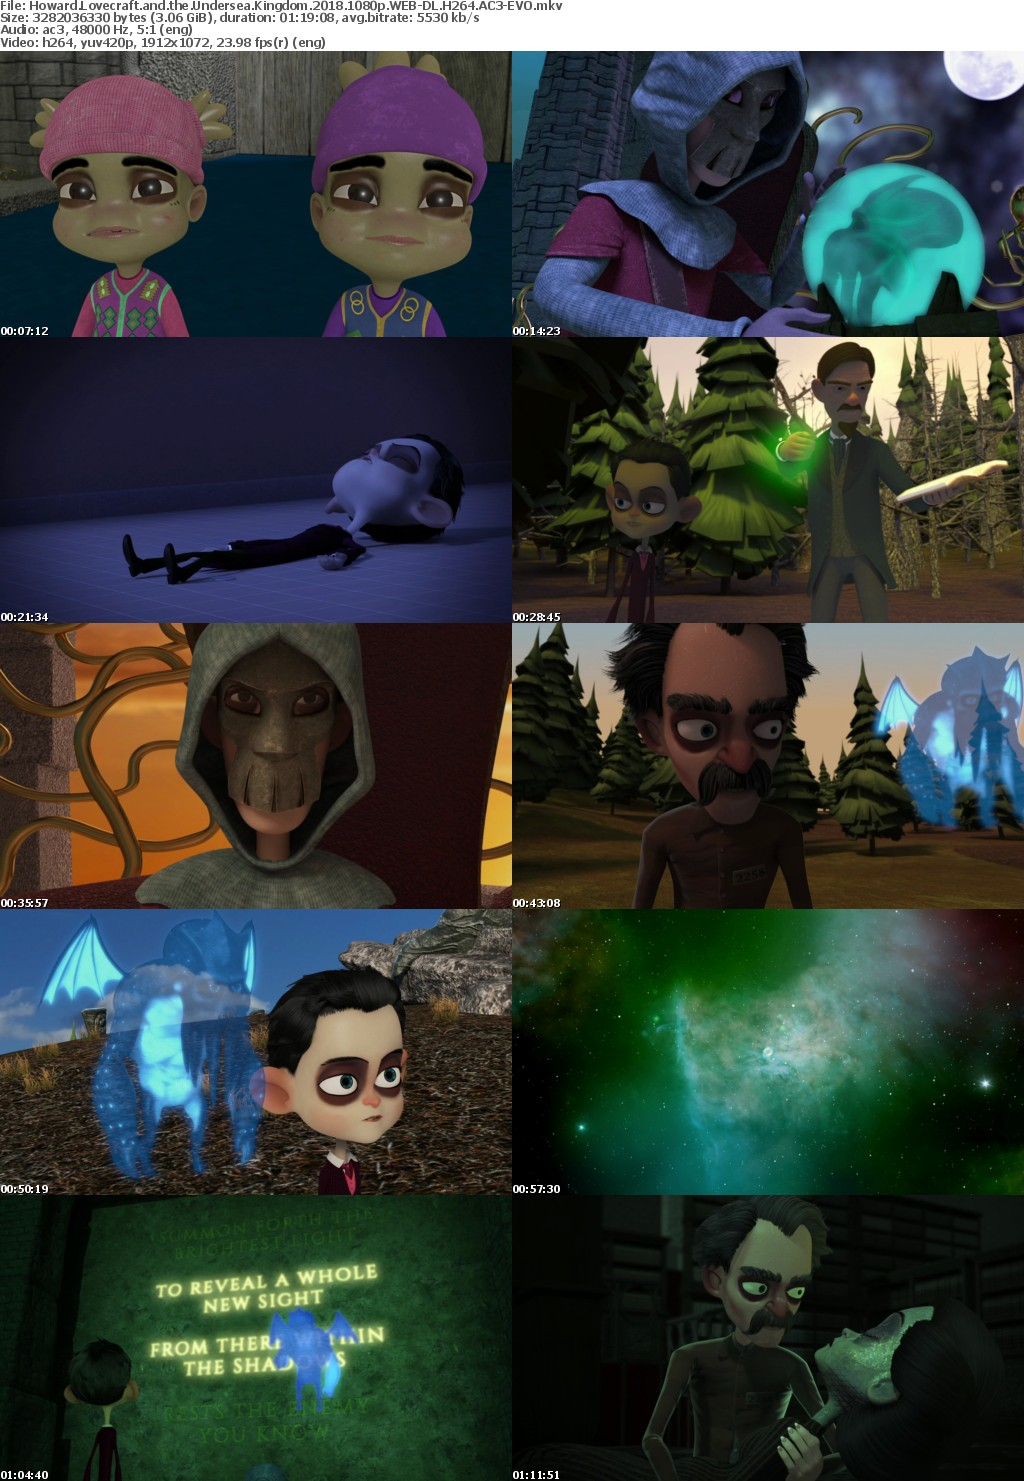 Howard Lovecraft and the Undersea Kingdom (2018) 1080p WEB-DL H264 AC3-EVO